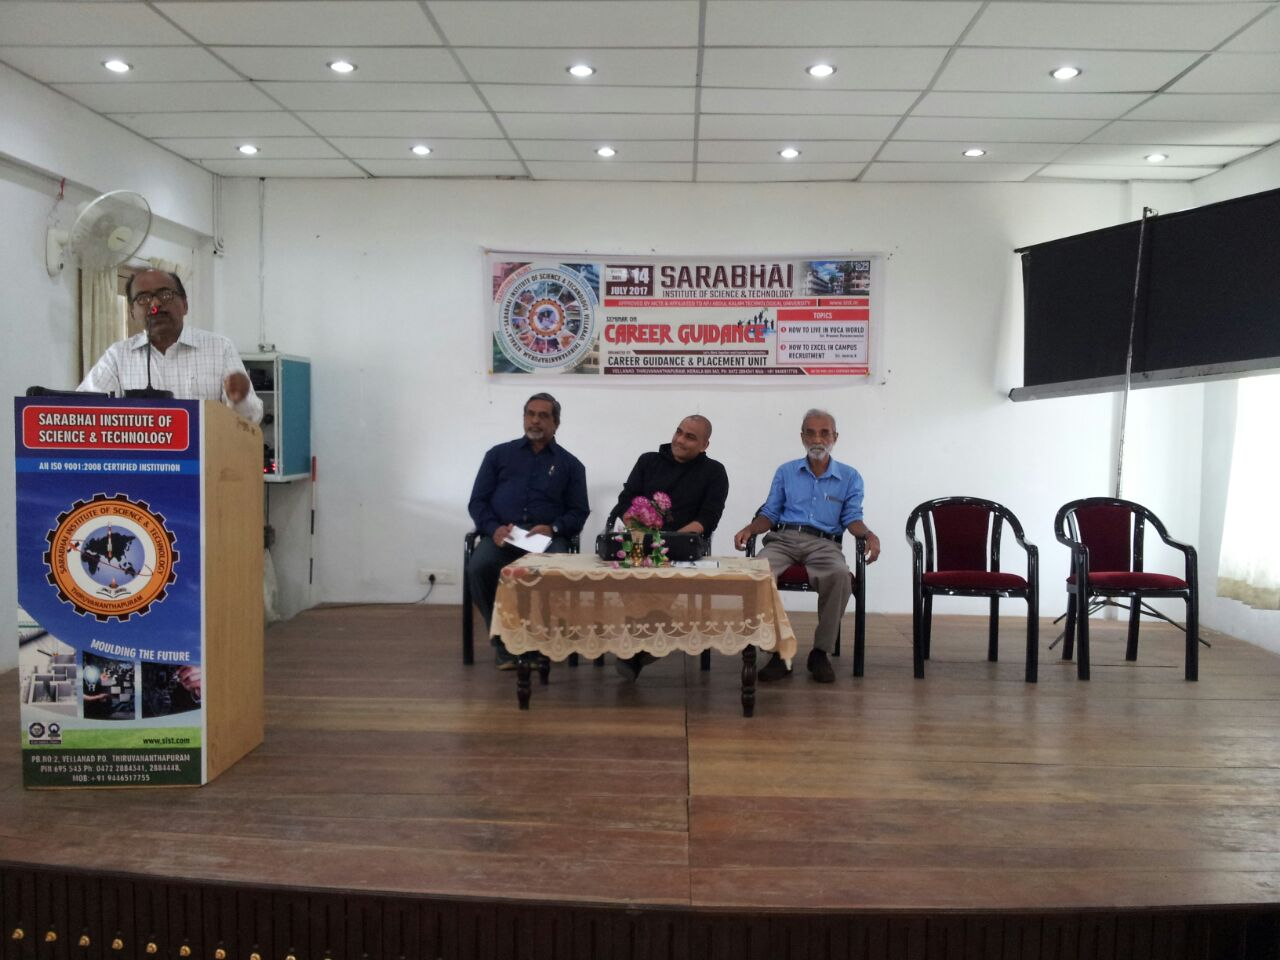 Seminar On Career Guidance Organised By And Placement Unit